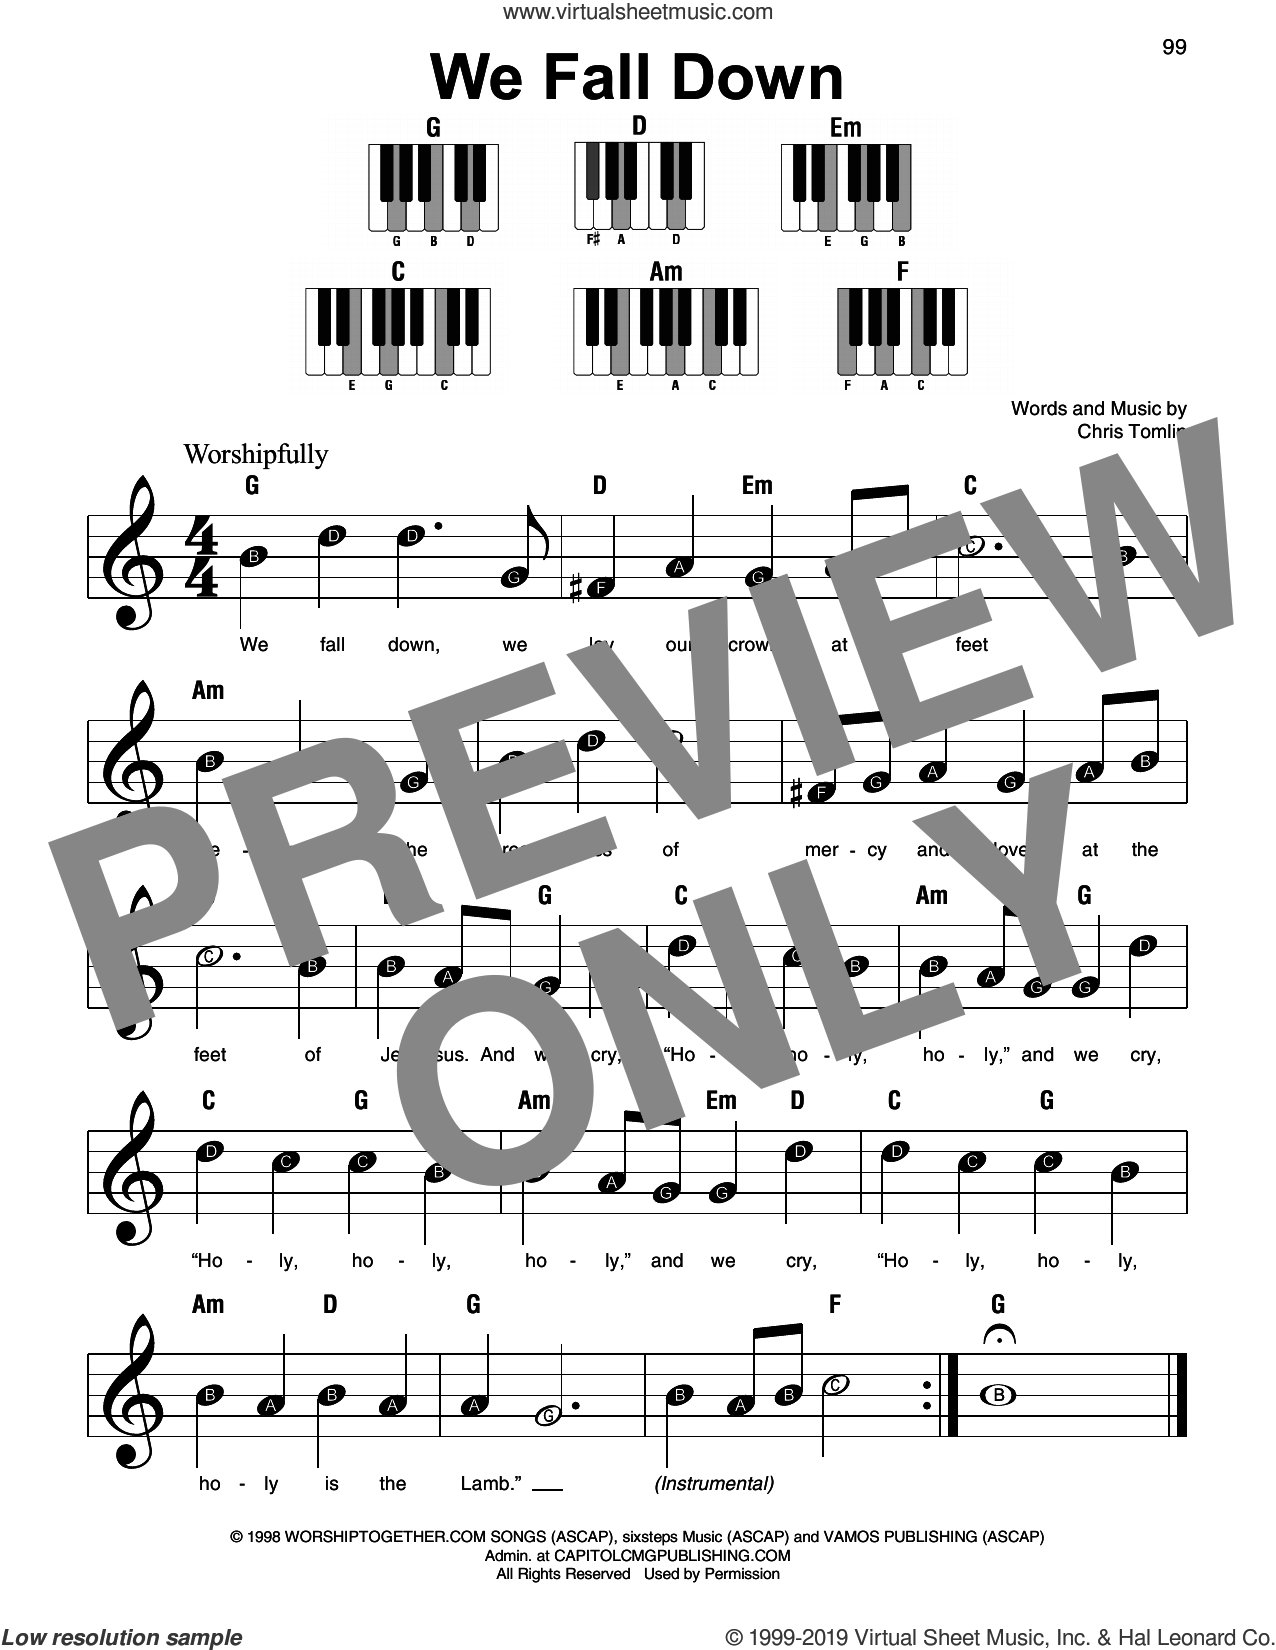 We Fall Down sheet music for piano solo by Chris Tomlin, Kutless and Passion, beginner skill level